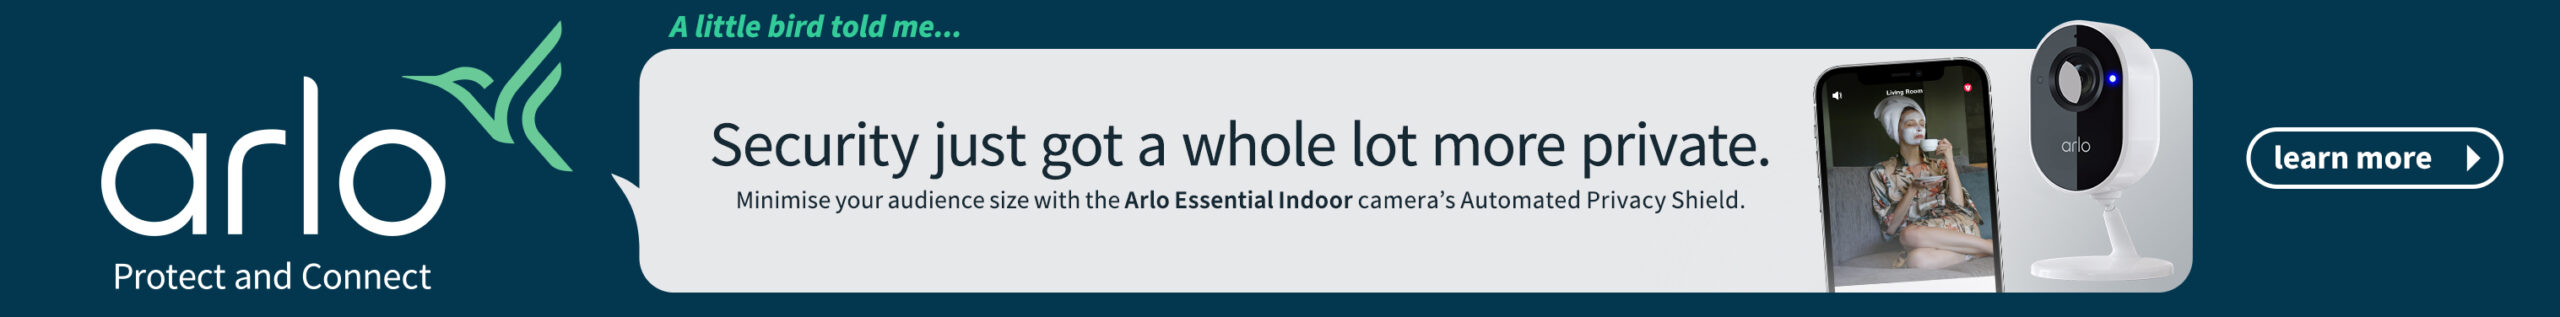 ARL0355 Arlo ESS Indoor Generic Banner 728x90 V4 scaled iPod Vs TIVO TVC Rip Off Exposed